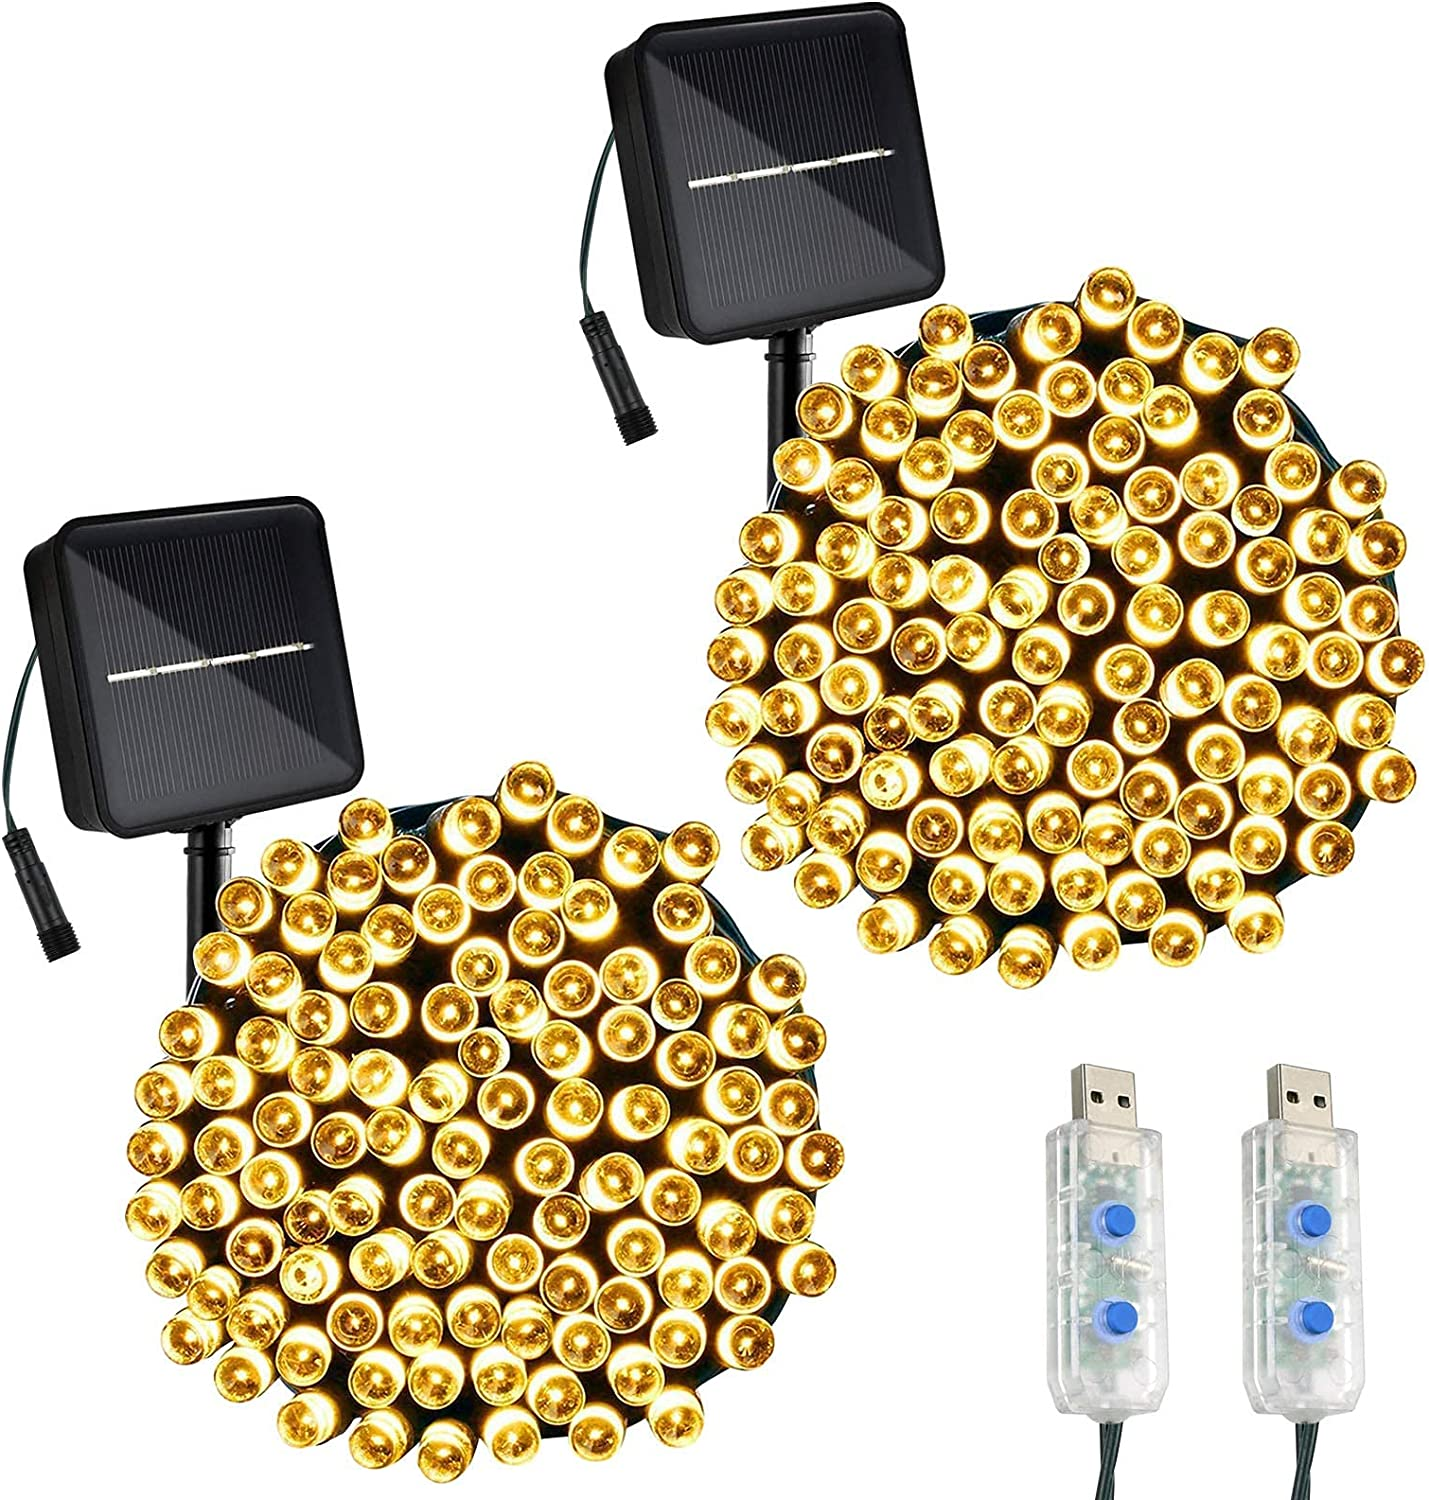 Solar Fairy Lights with USB Powered for Outdoor/Indoor Decorations, 8 Modes Waterproof String Lights for Bedroom/Garden/Patio, 2 Packs 100 LED 39.4ft(Warm White)